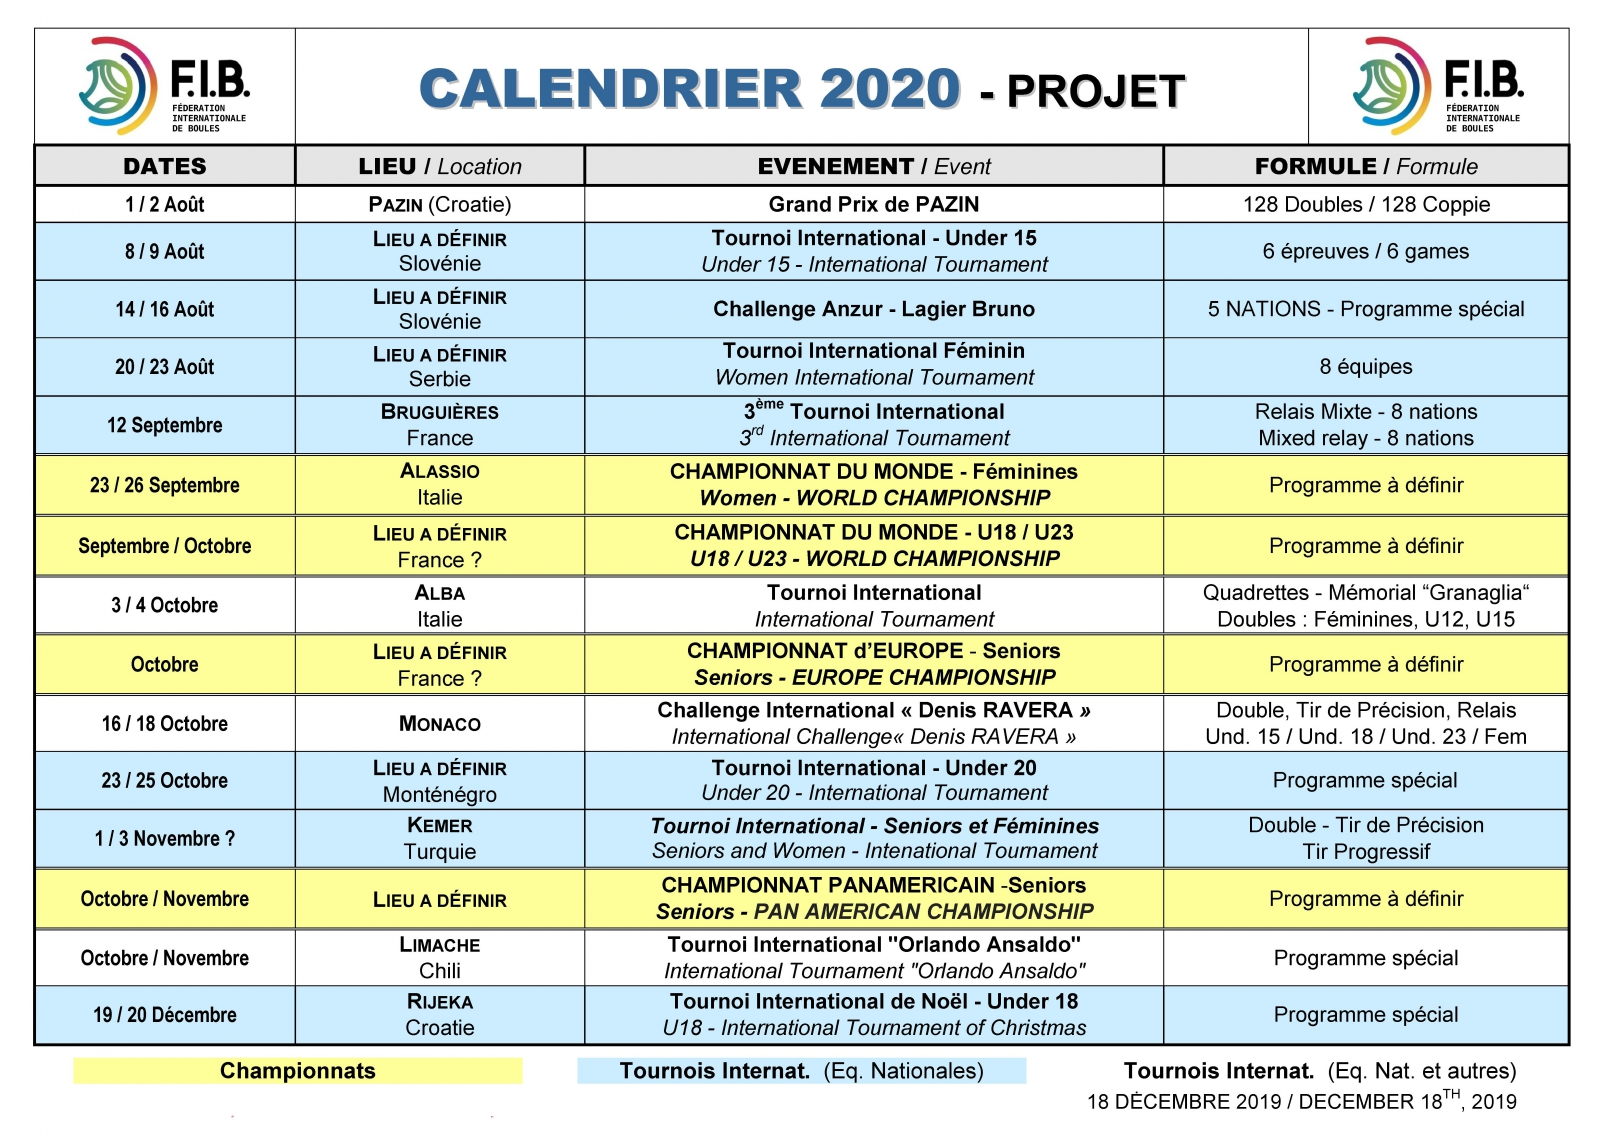 Le Calendrier 2020 est disponible   Fédération Internationale de